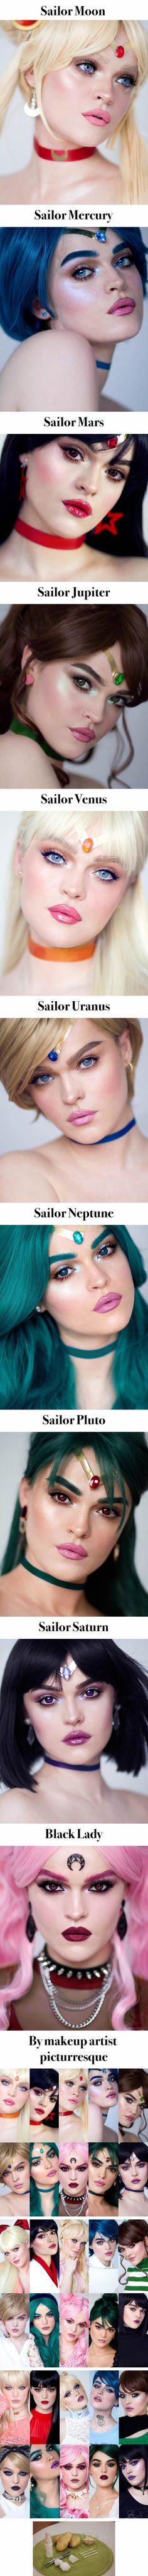 Makeup artist does up every single Sailor Senshi from Sailor Moon. Sailor Saturn is my fav (Diy Shirts Art)